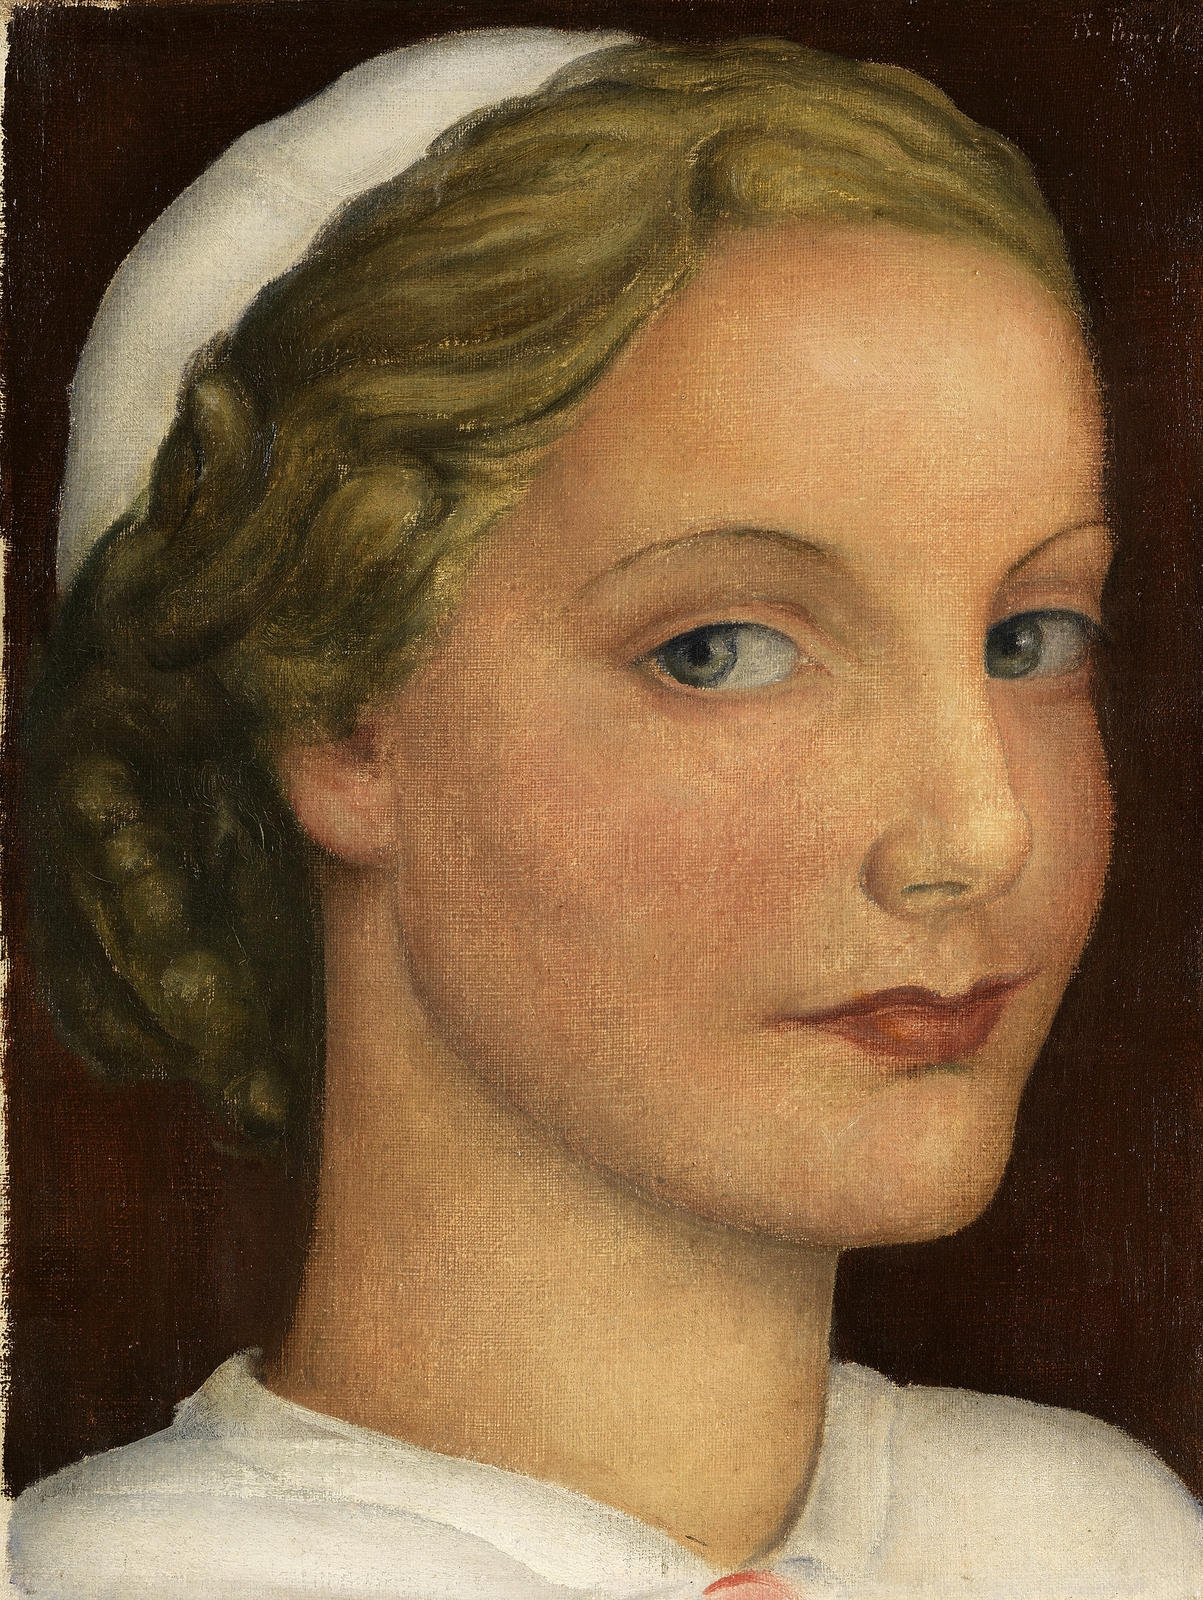 Bruno Breil_Портрет молодой женщины (Portrait of a young woman)_32 x 24,3_х.,м._Частное собрание.jpg